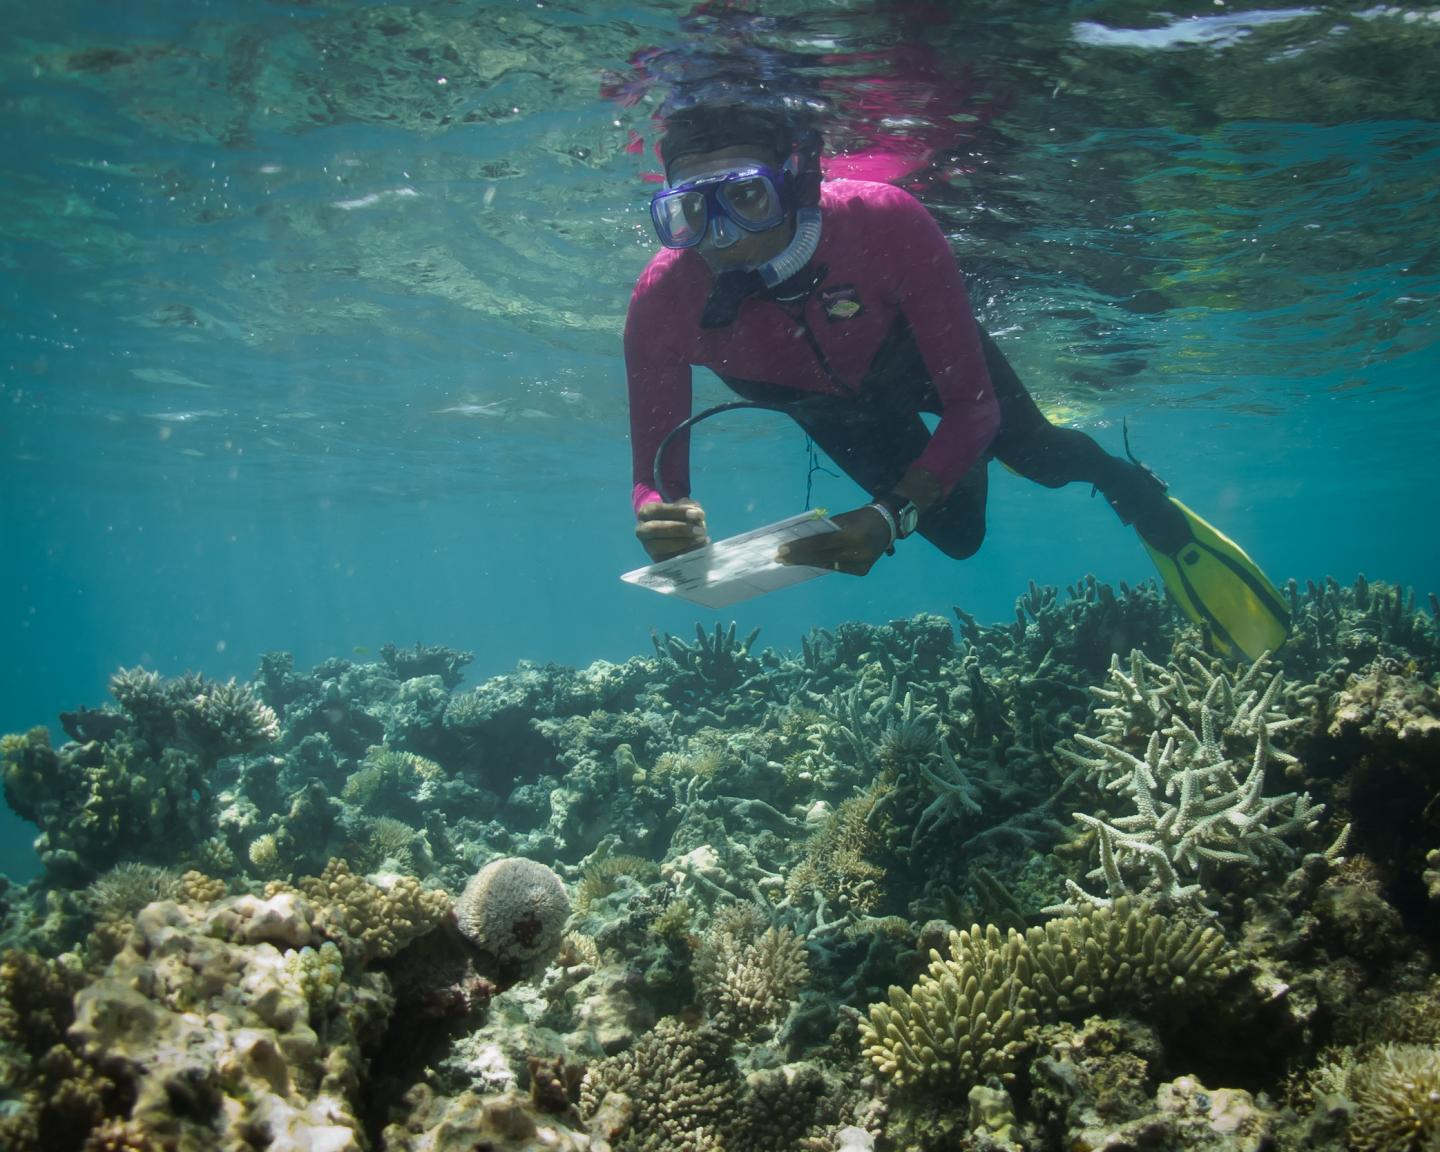 A WCS scientist recording data on coral cover in coastal Kenya. A new climate stress model using both environmental data and field observations provides scientists with a more accurate predictive tool than more widely used models based on solely temperature and coral survival thresholds, according to a new study by WCS and other groups. Credit Emily Darling/WCS